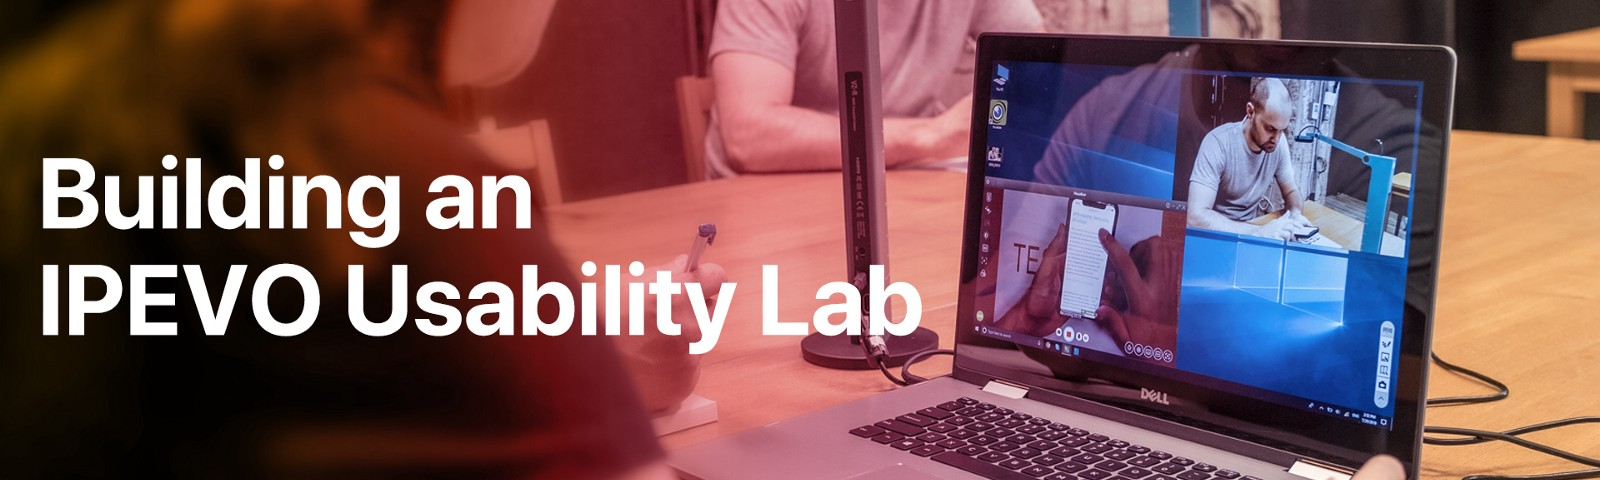 Building an affordable and portable IPEVO usability lab